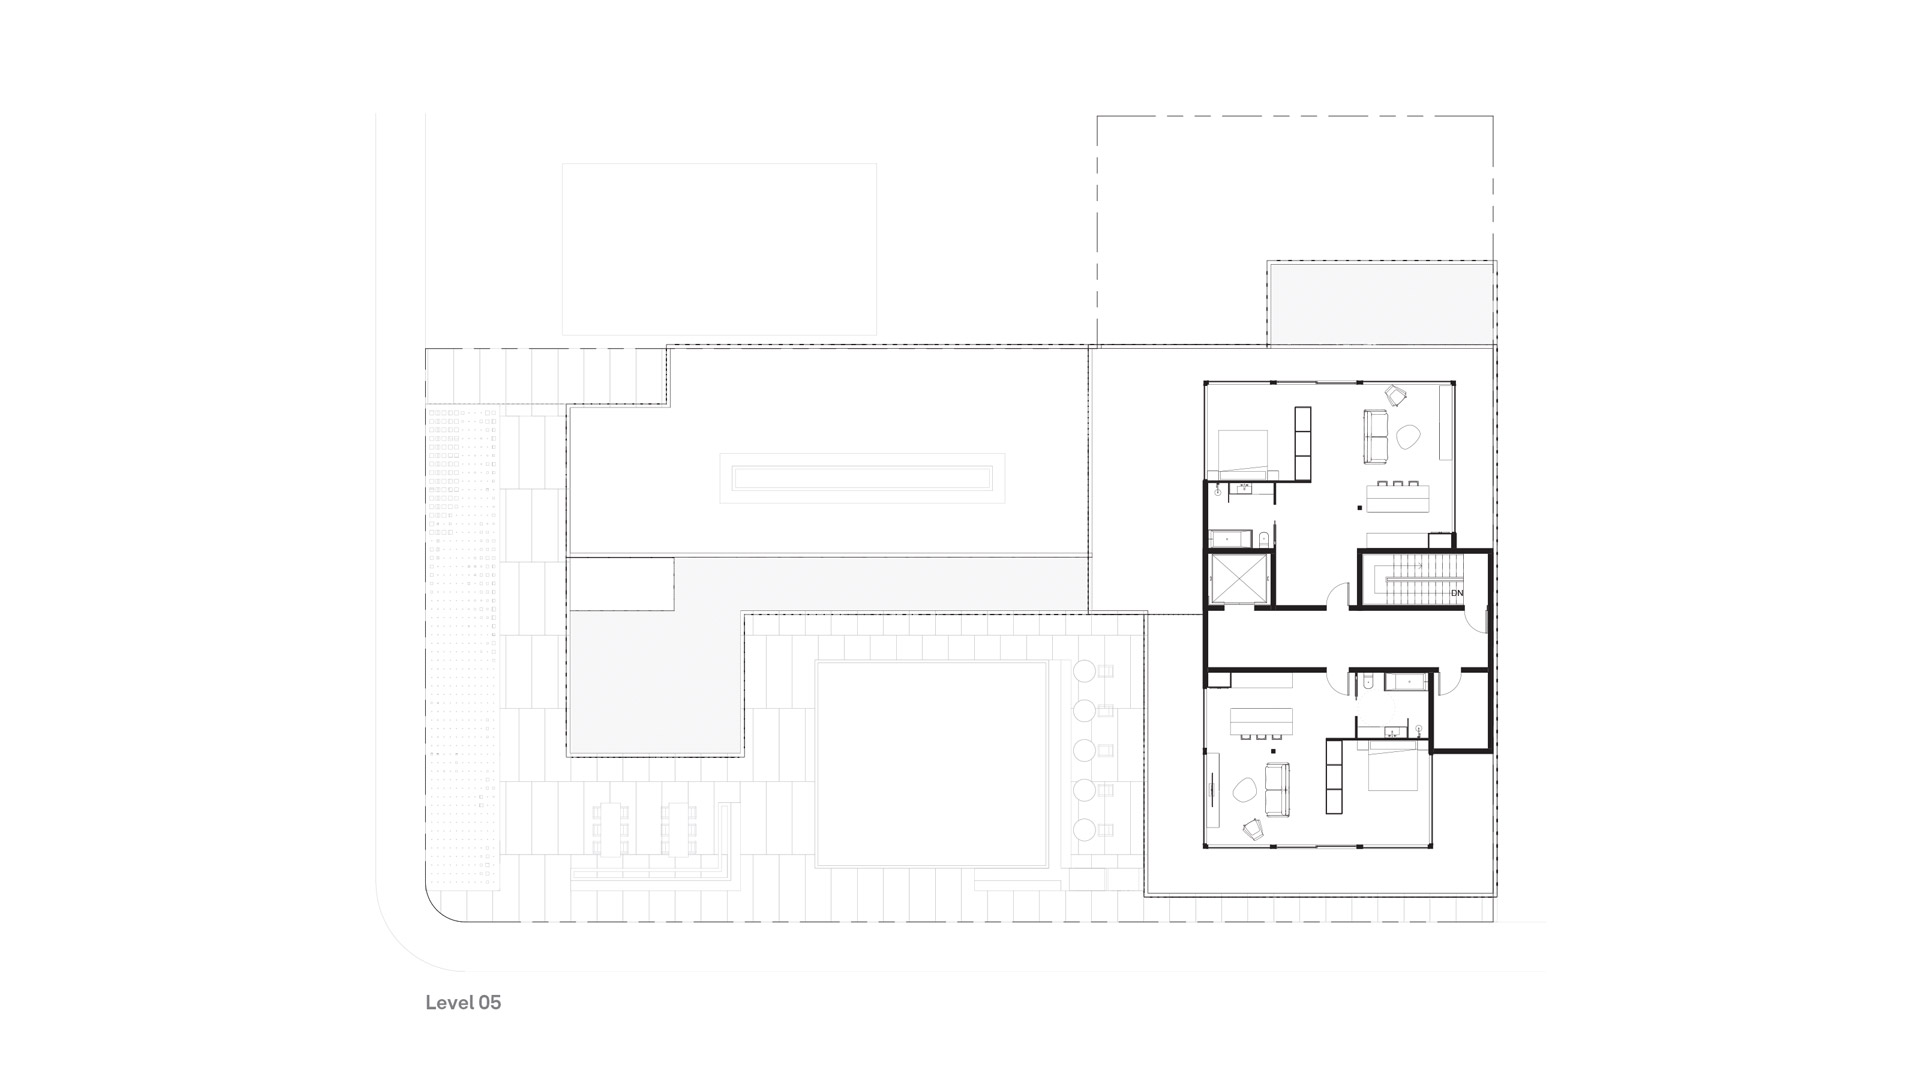 C7 Hotel + Brewery - Level 05 Plan — Timothy Mandody